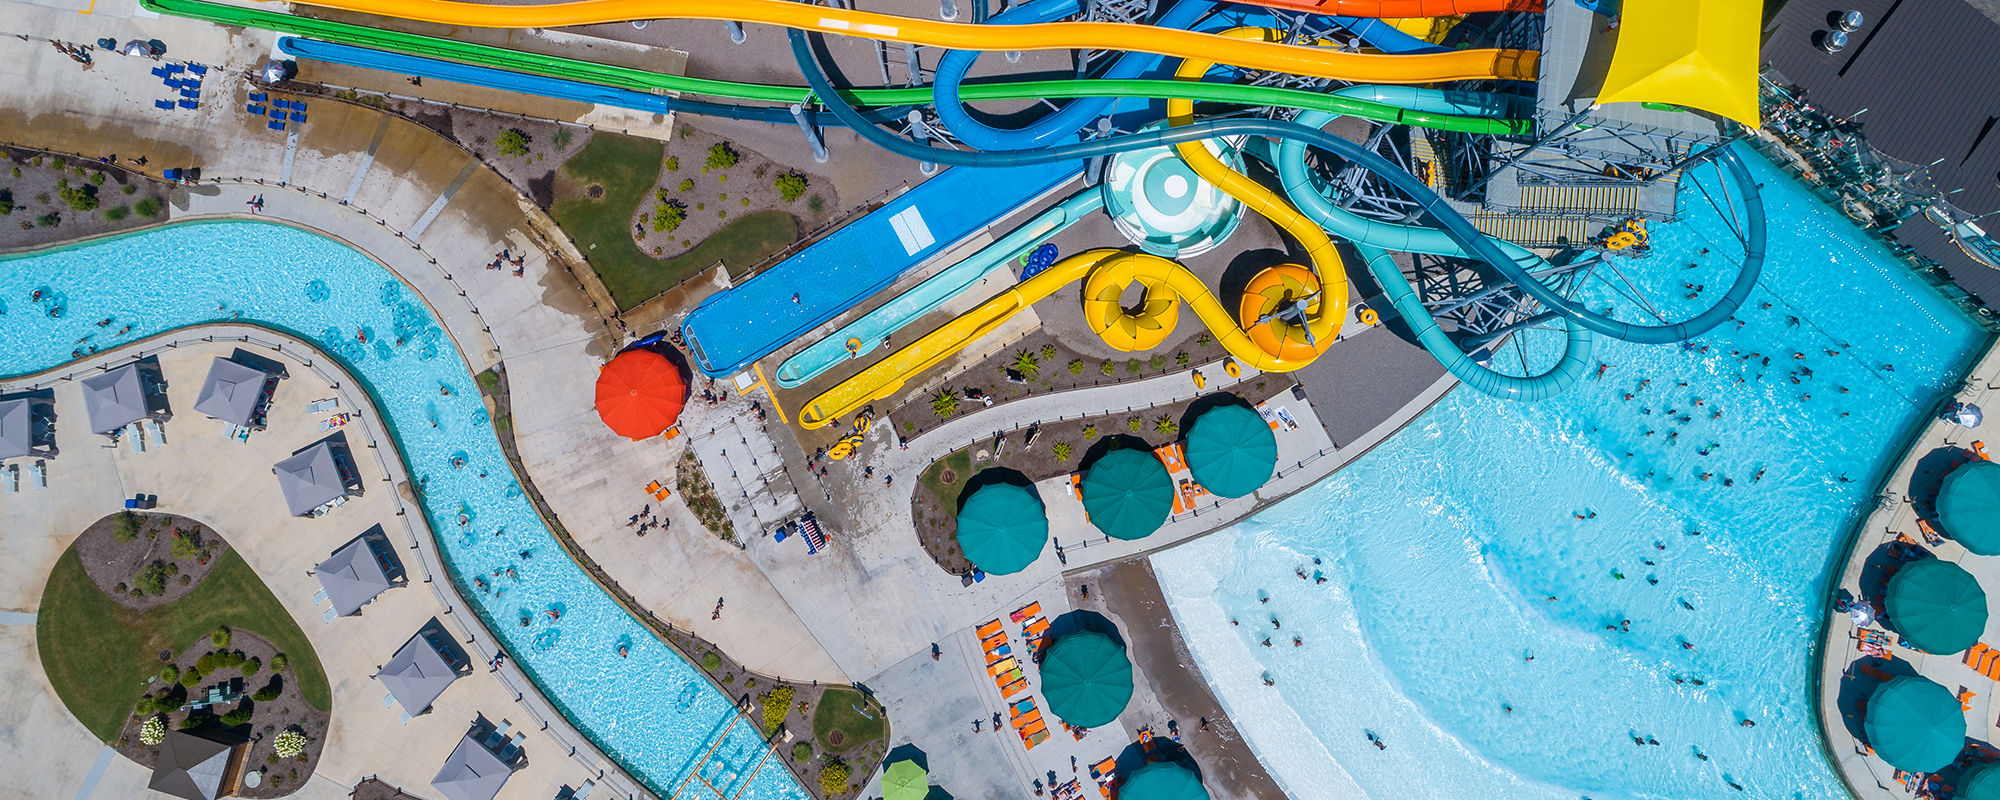 water park overview